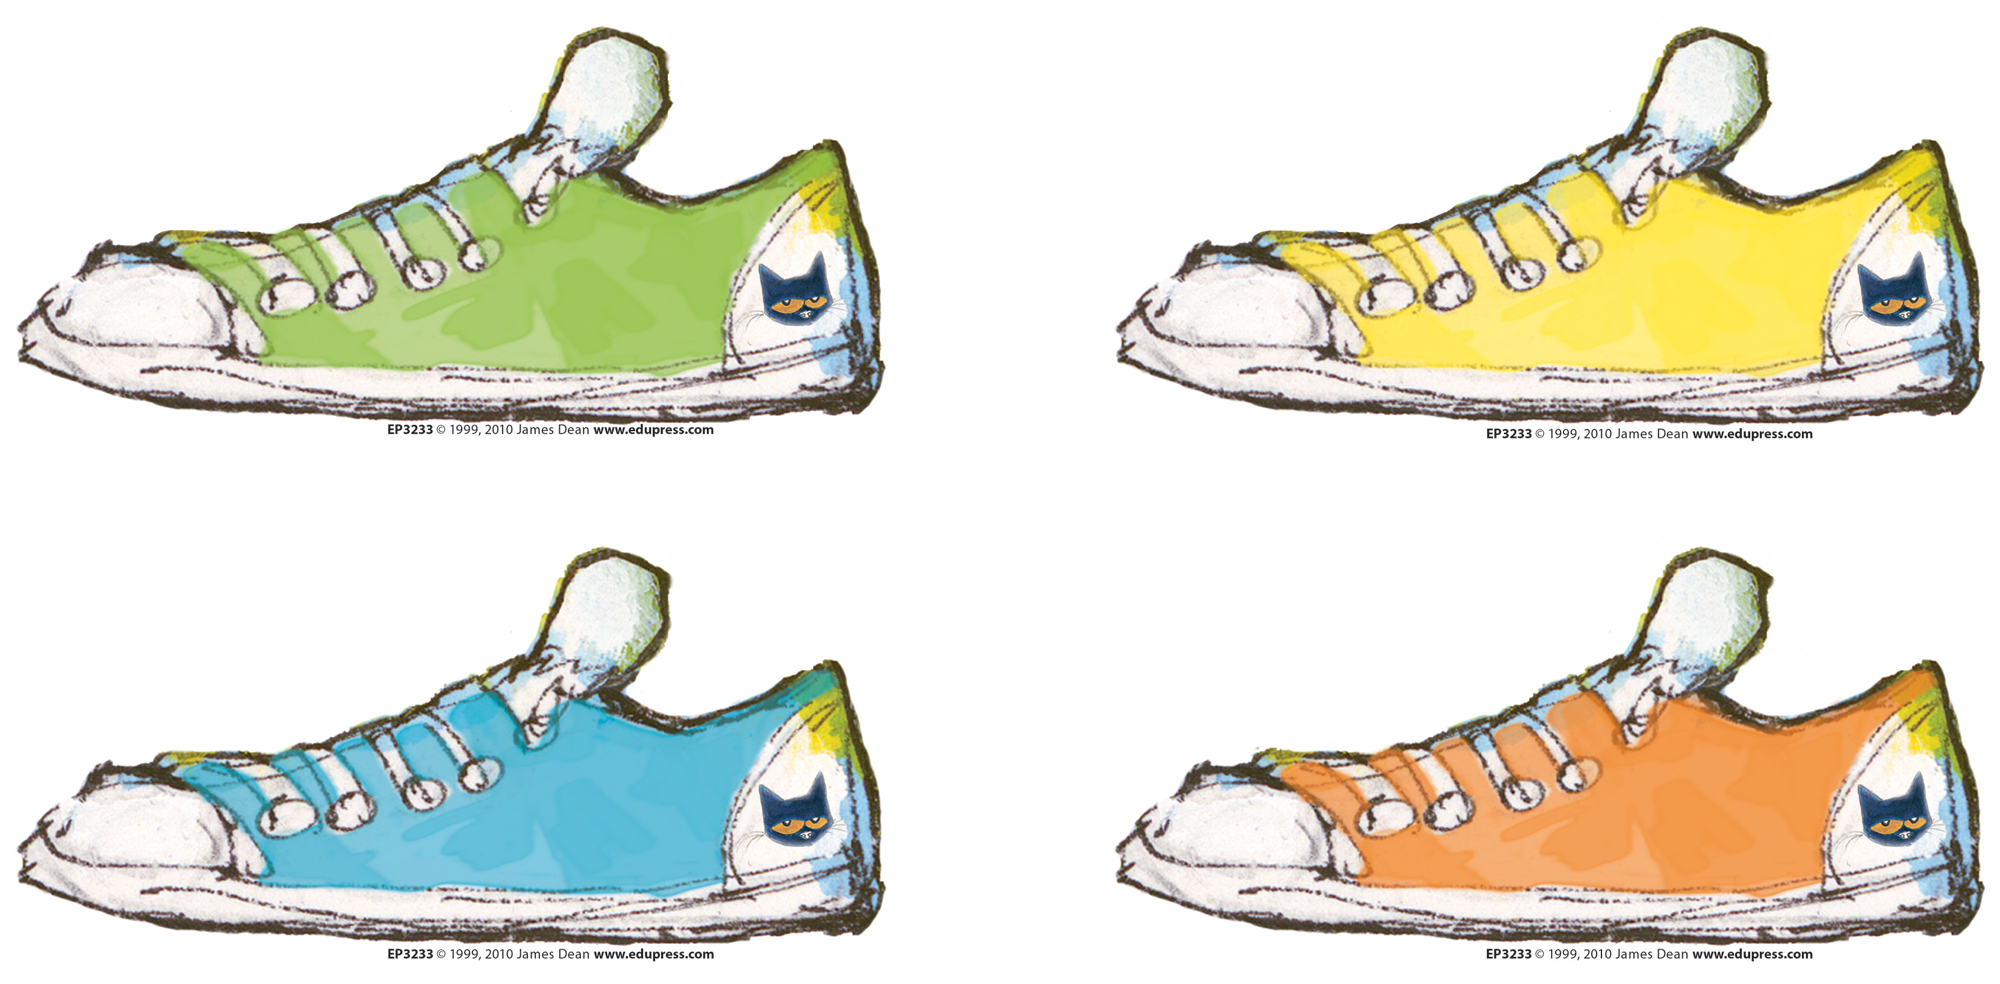 Groovy shoes accents pinterest. Strawberries clipart pete the cat